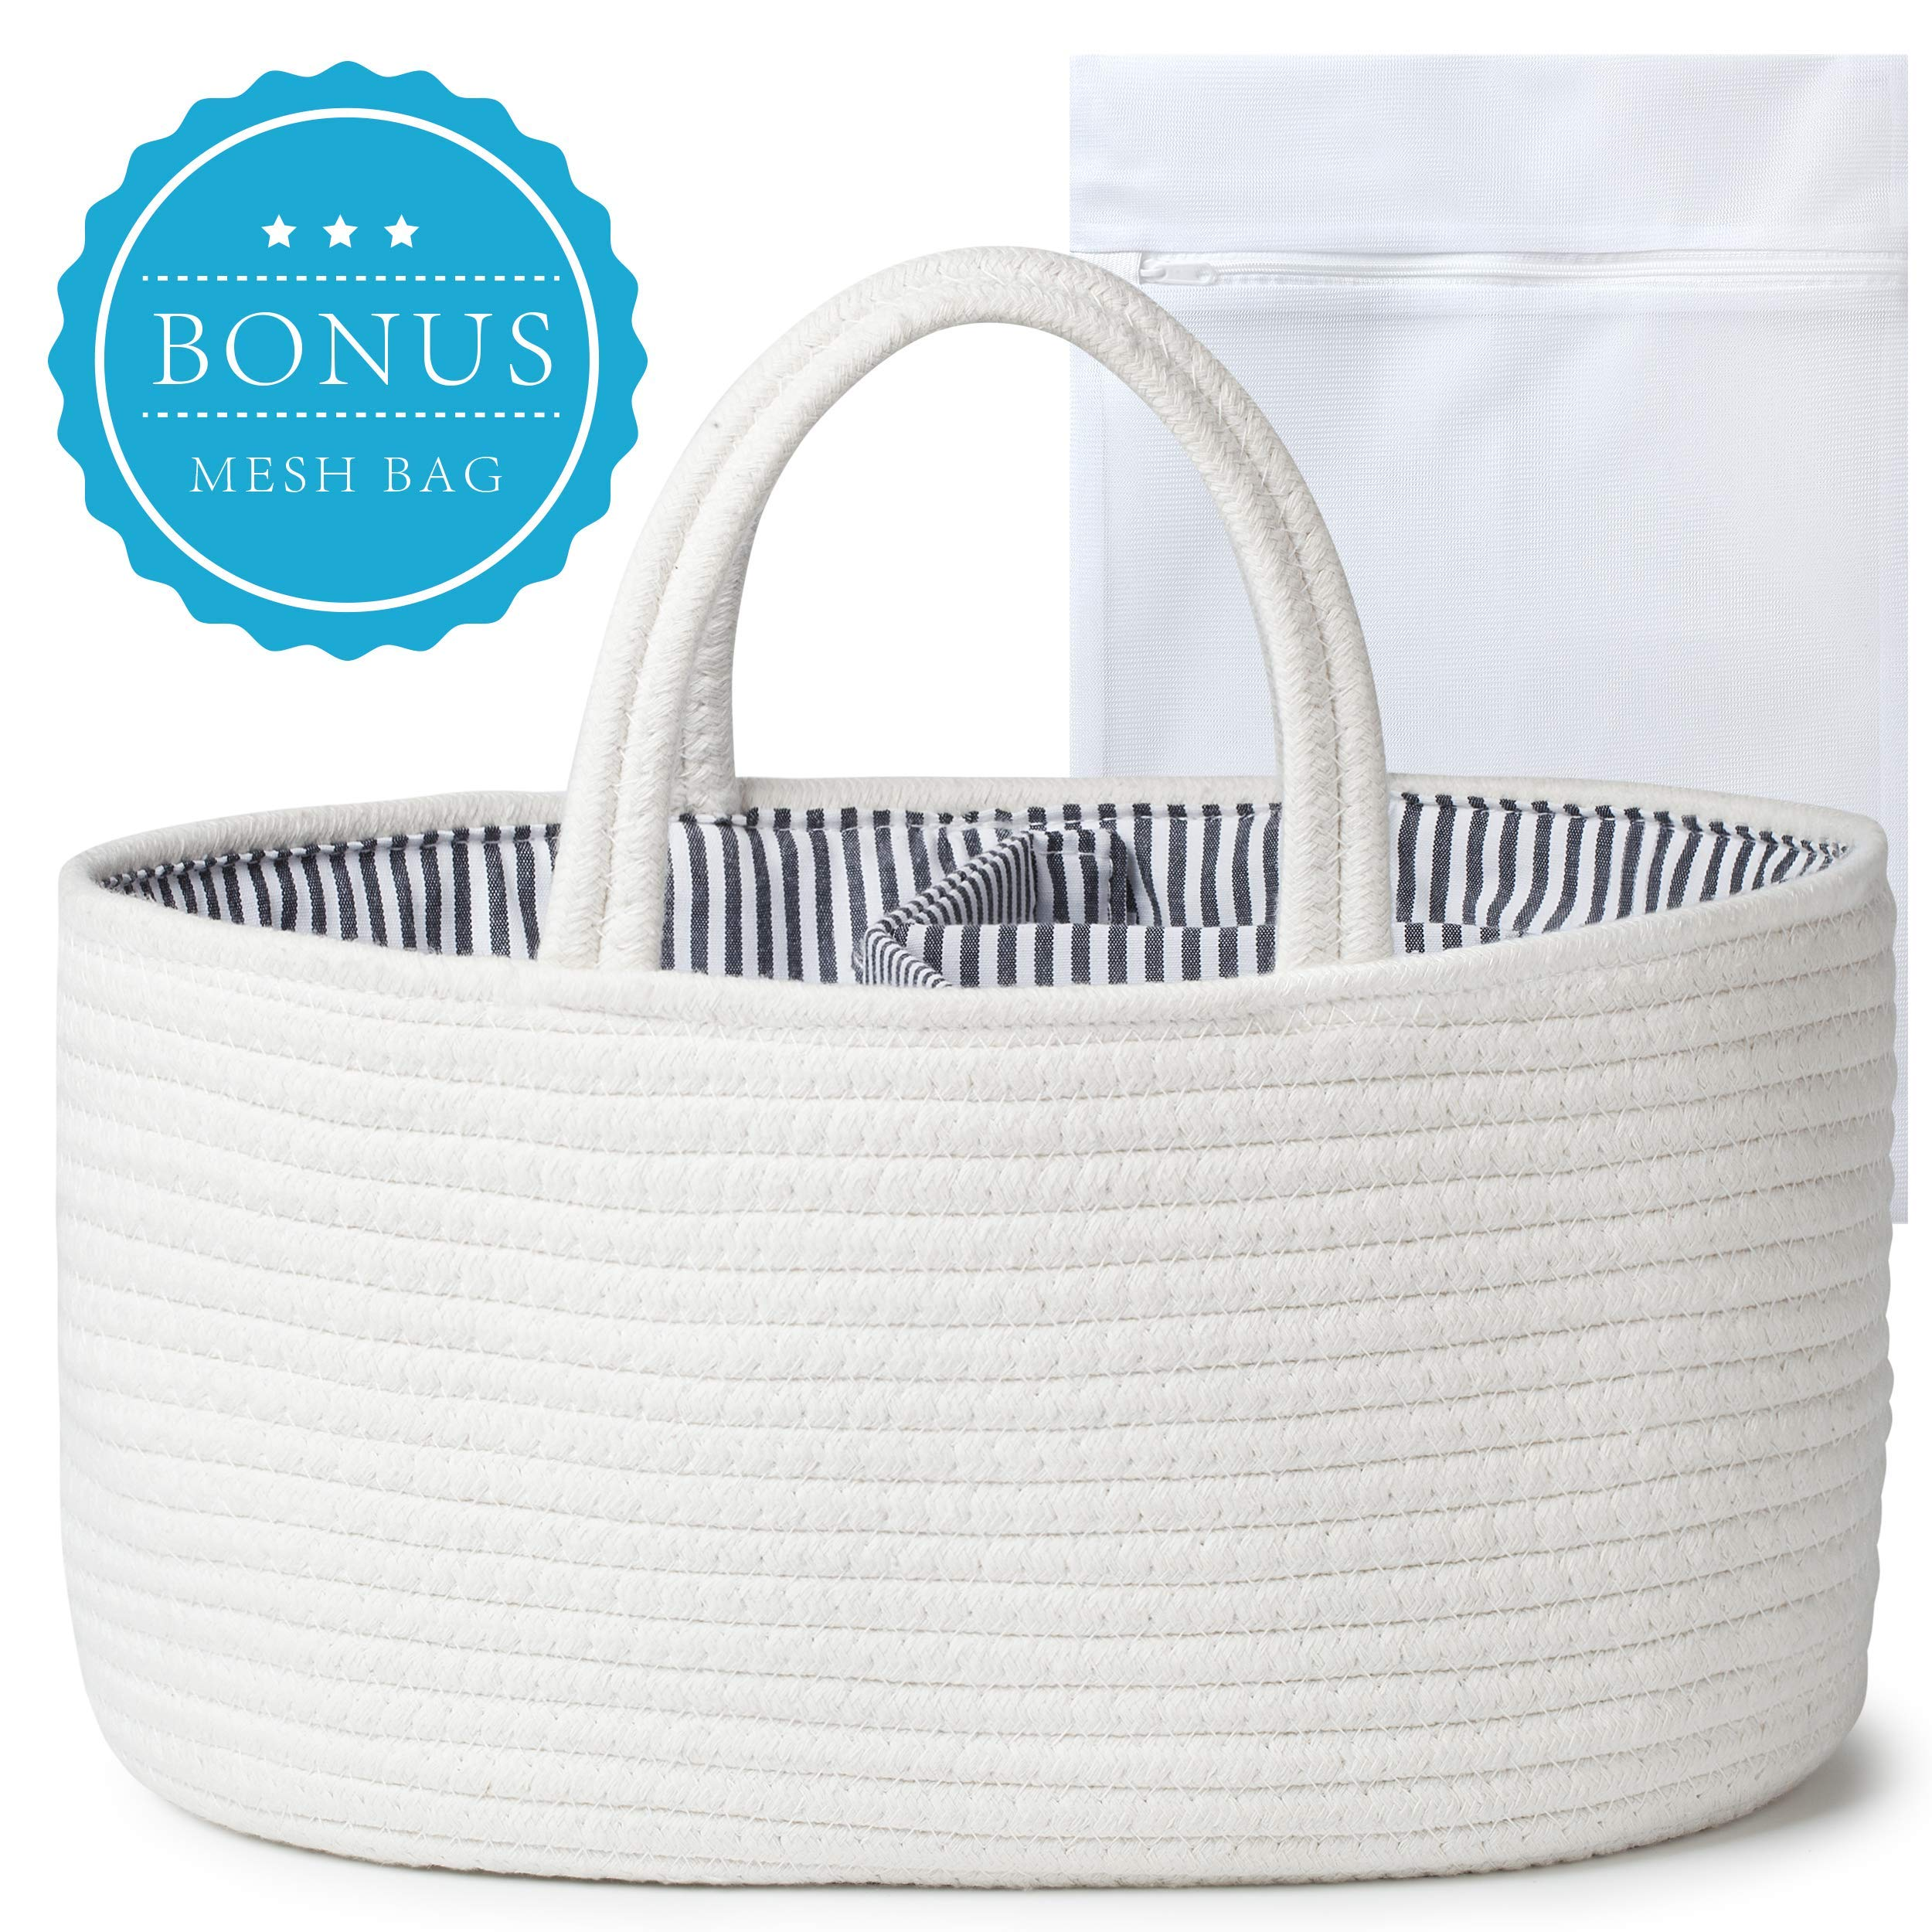 We Bloom Baby Basket Diaper Caddy Organizer - Nursery Storage Cotton Rope Bin for Changing Table & Car - Newborn Registry Must Haves for Boys and Girls - Baby Shower Gift Basket with Removable Insert by We Bloom Co.